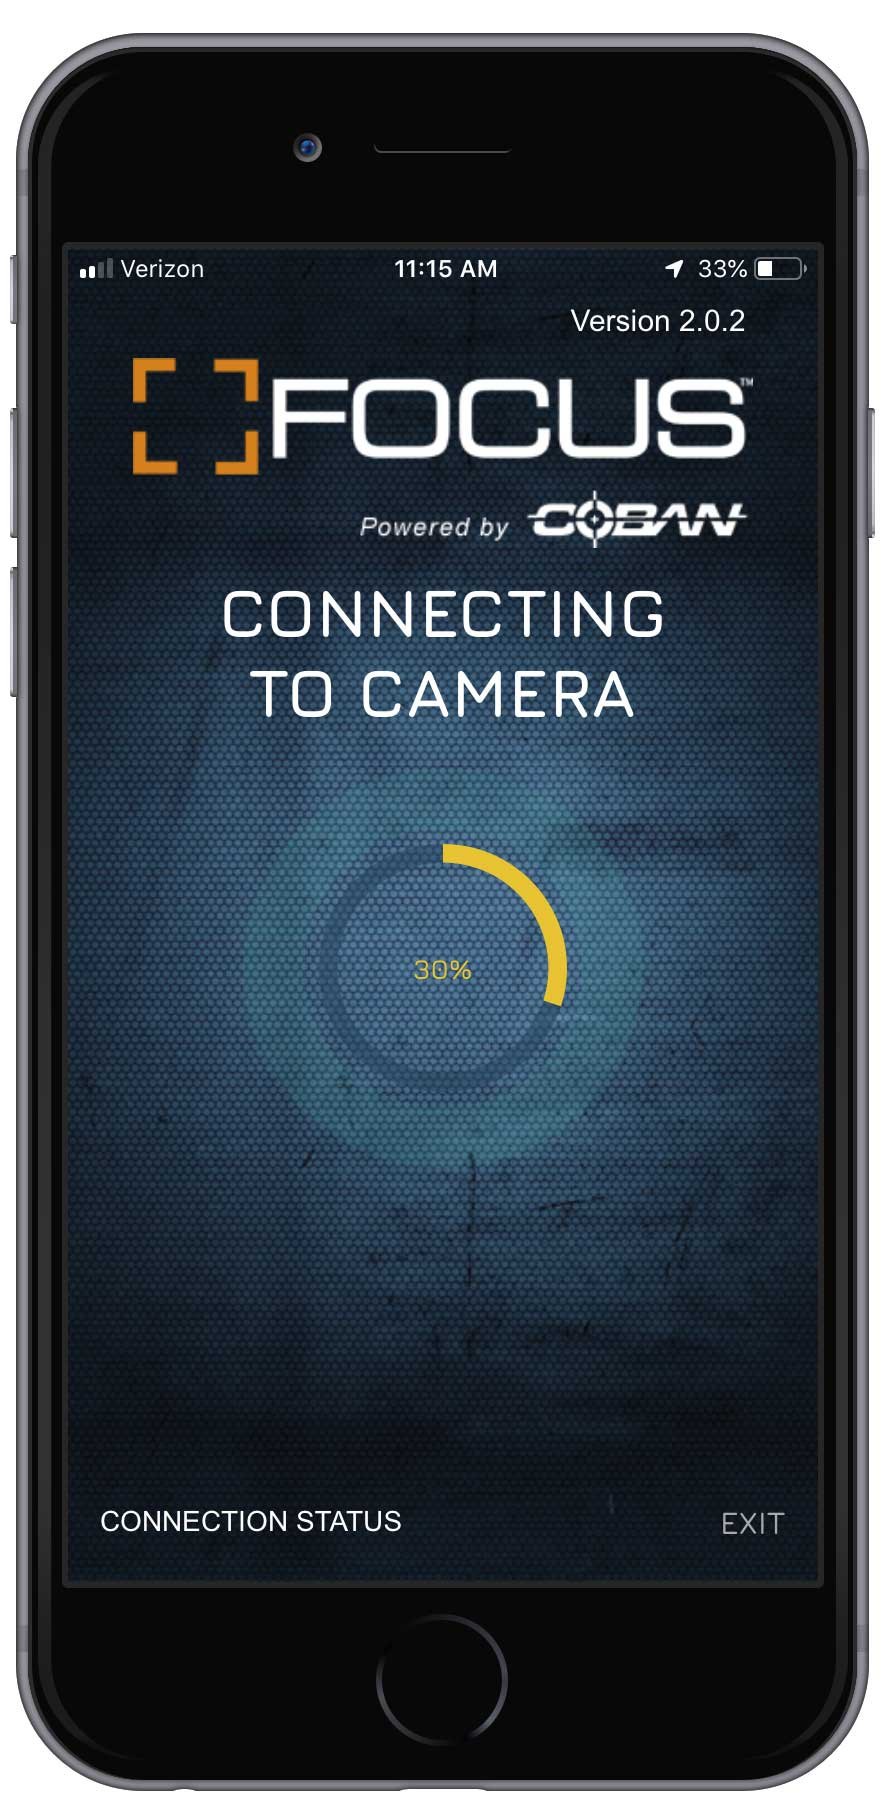 Focus by Coban Technologies